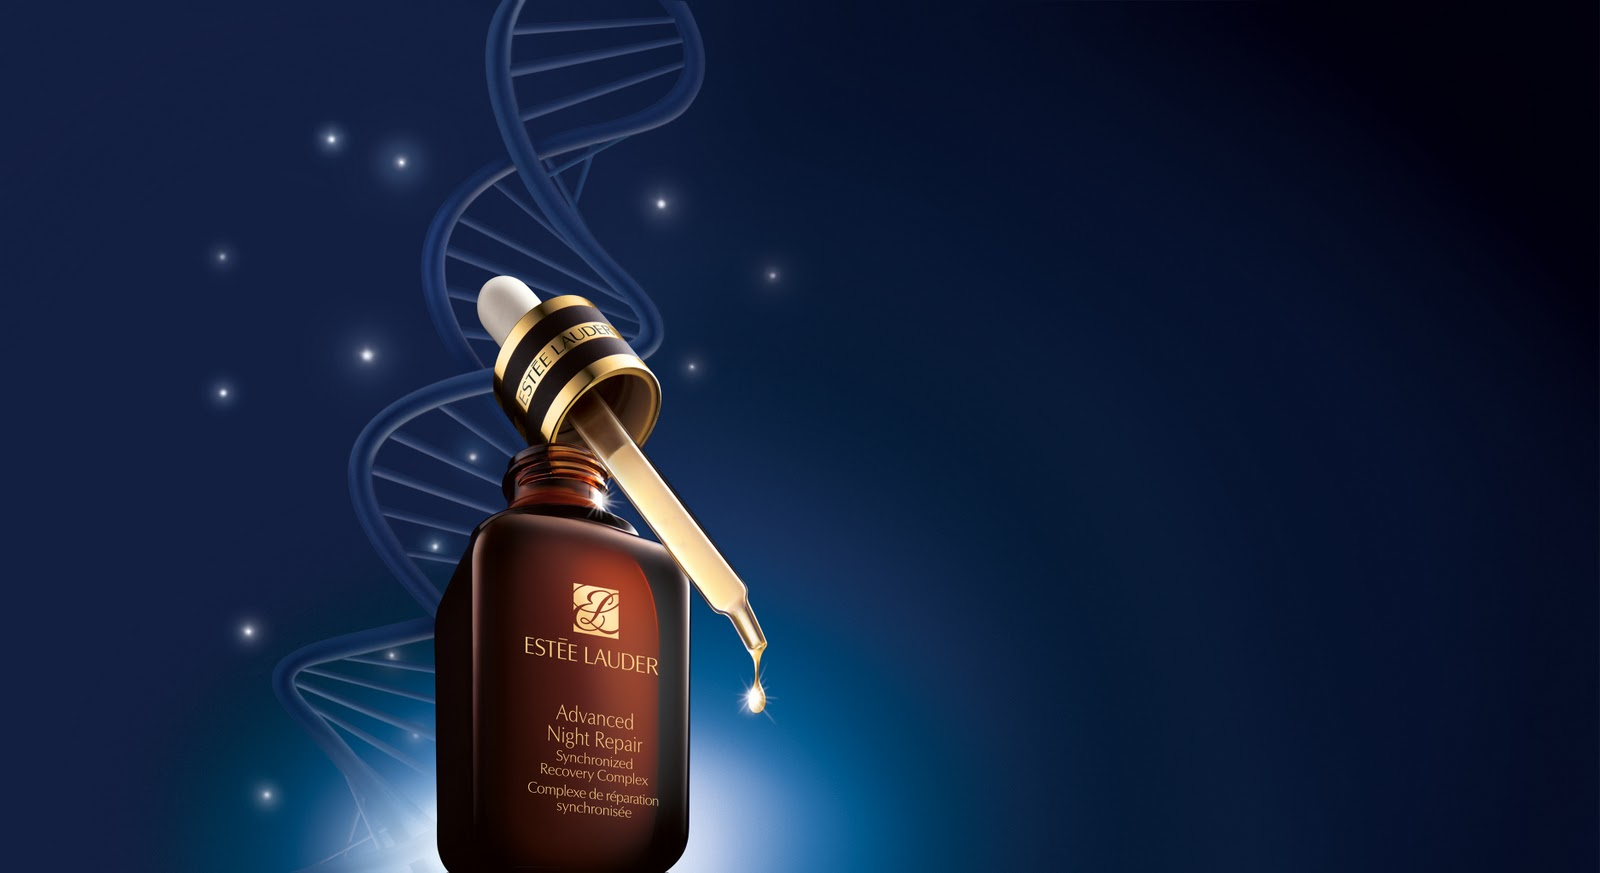 Advanced night repair: il siero 24 ore antiage di Estee Lauder